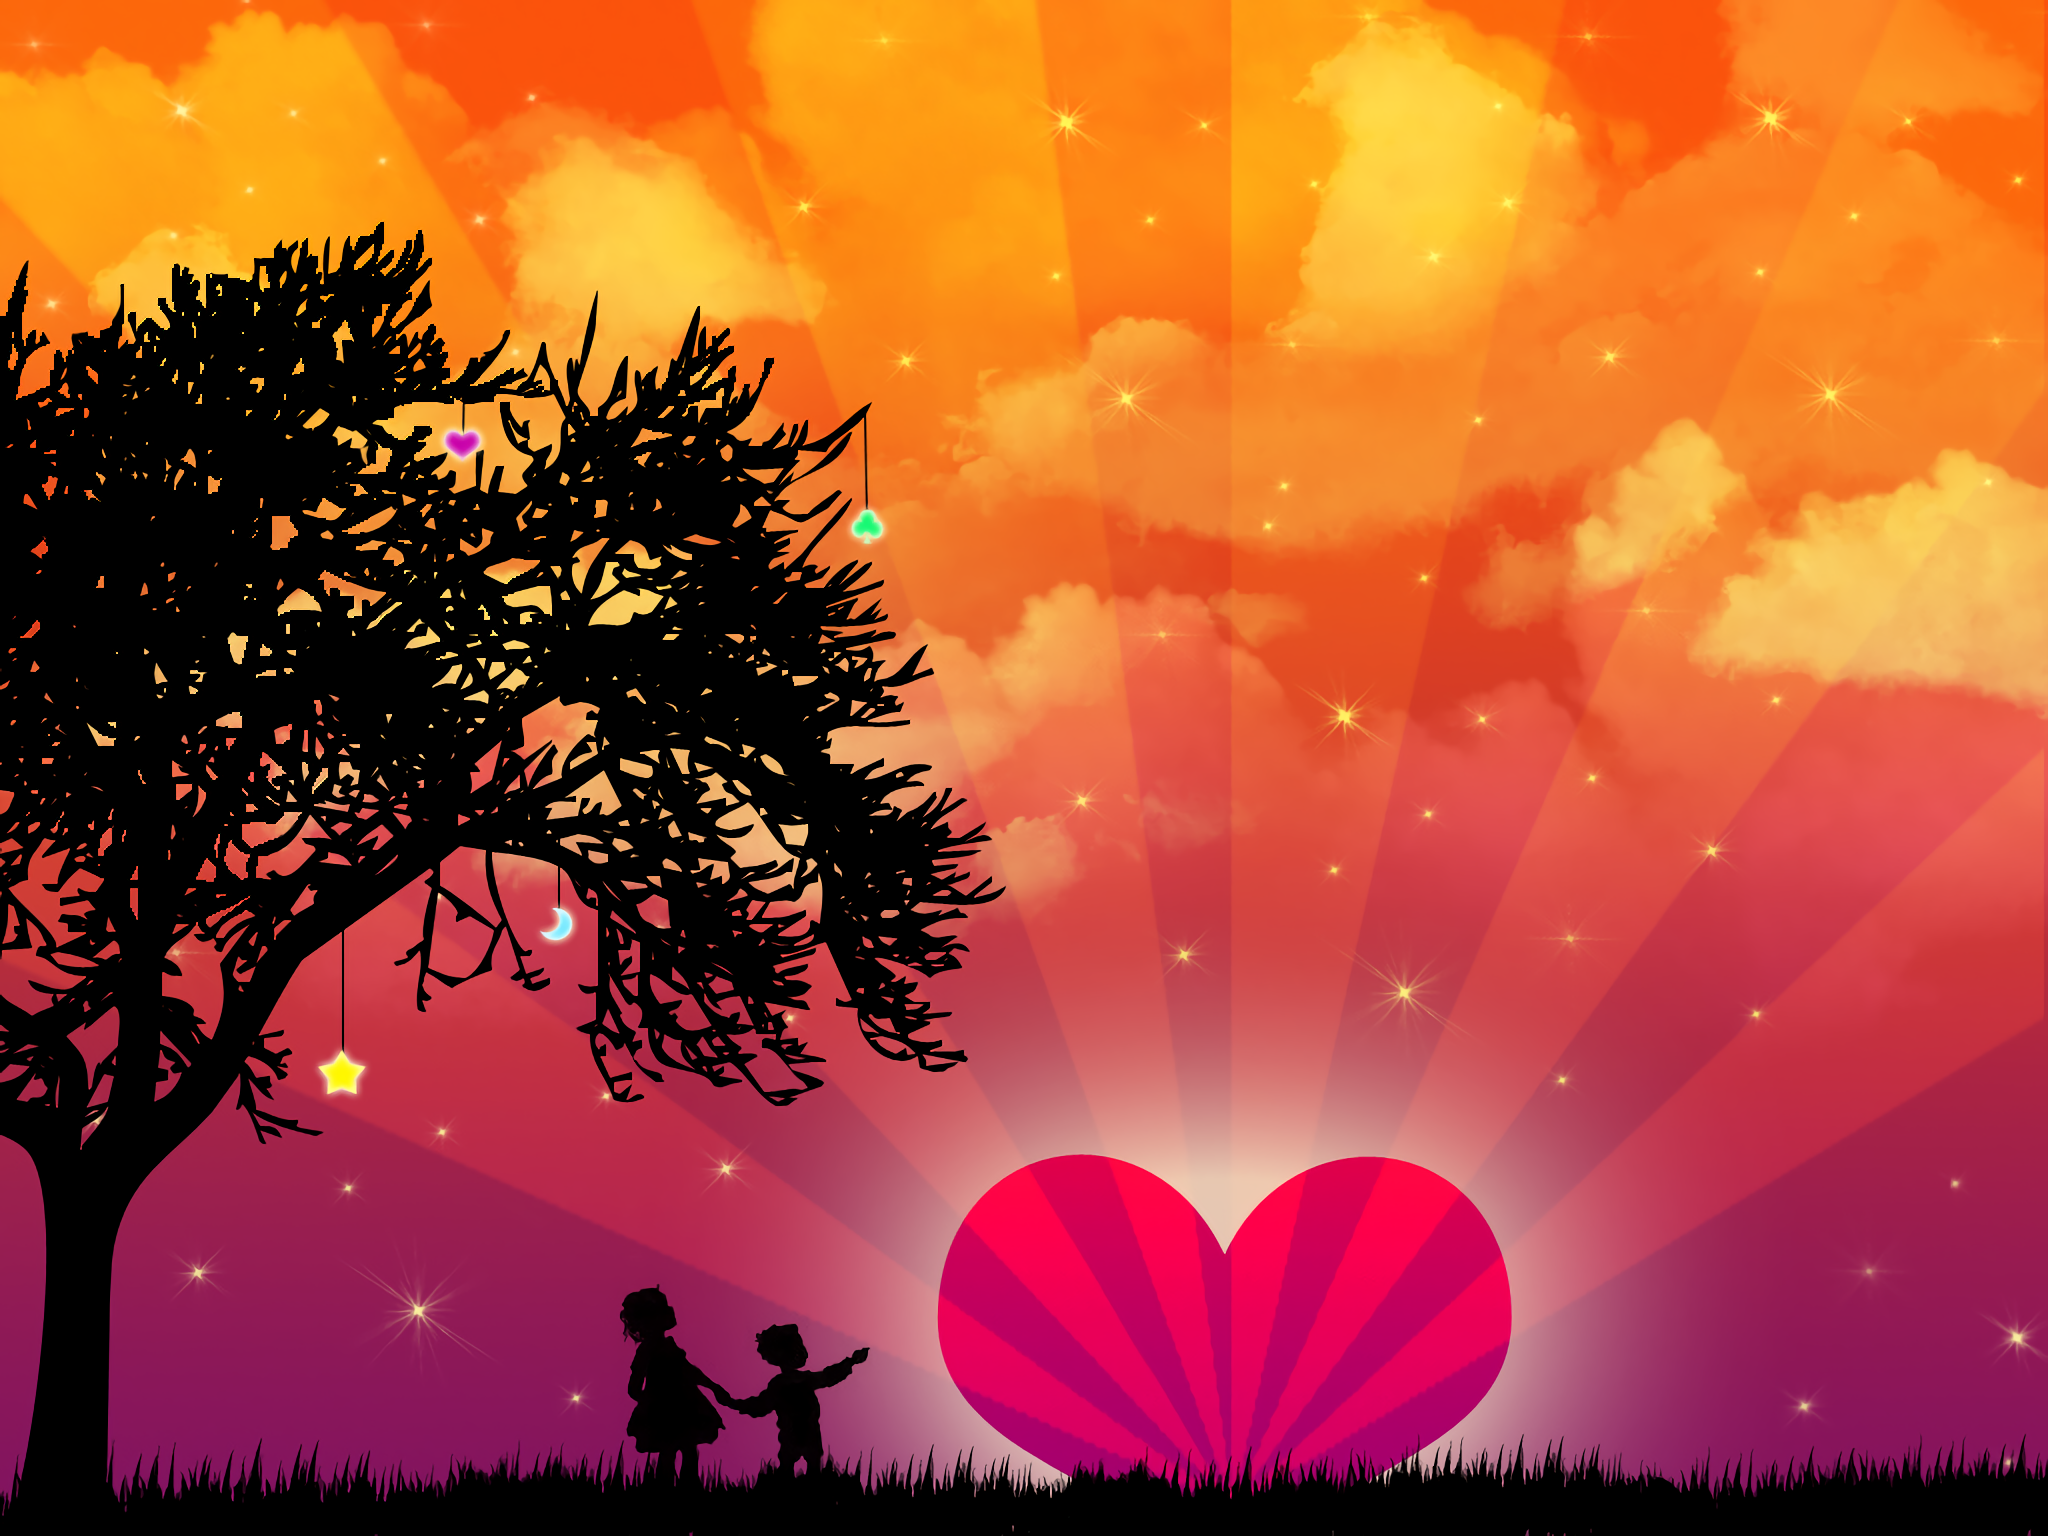 cute Love Wallpaper Full HD Download Desktop Mobile Backgrounds HD Wallpapers Pinterest Hd ...